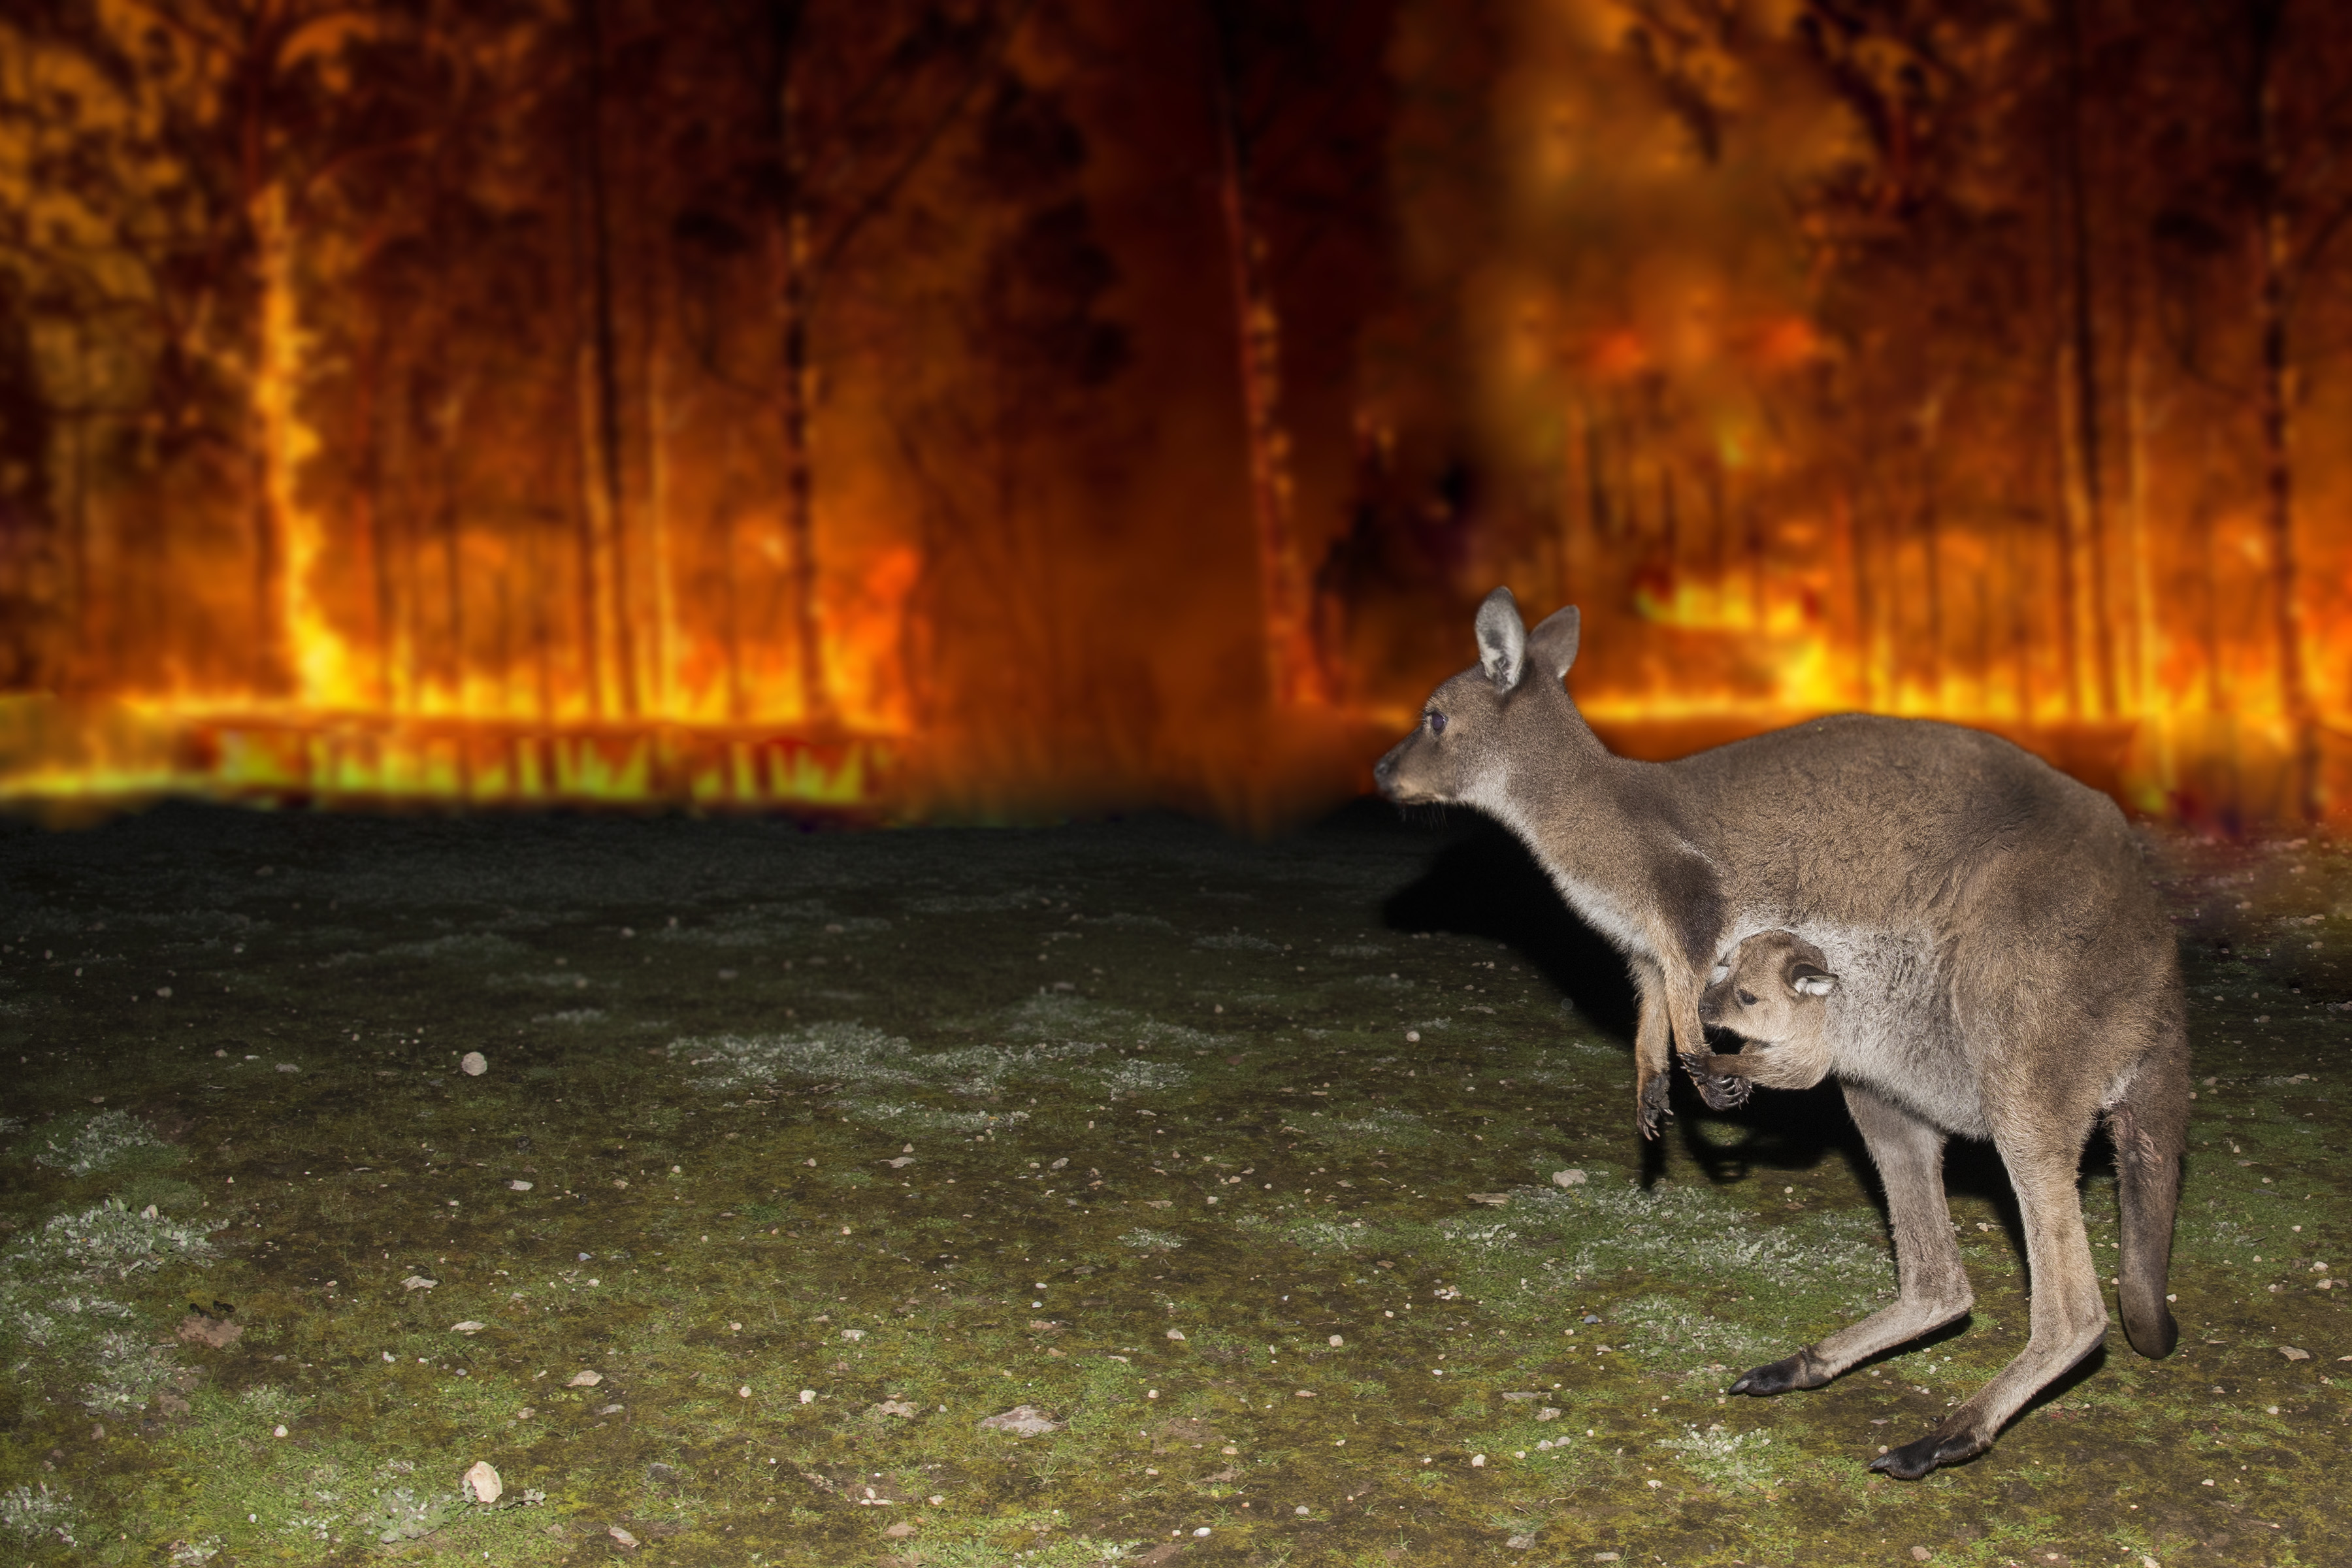 Amid the inferno: animal-rescue heroics